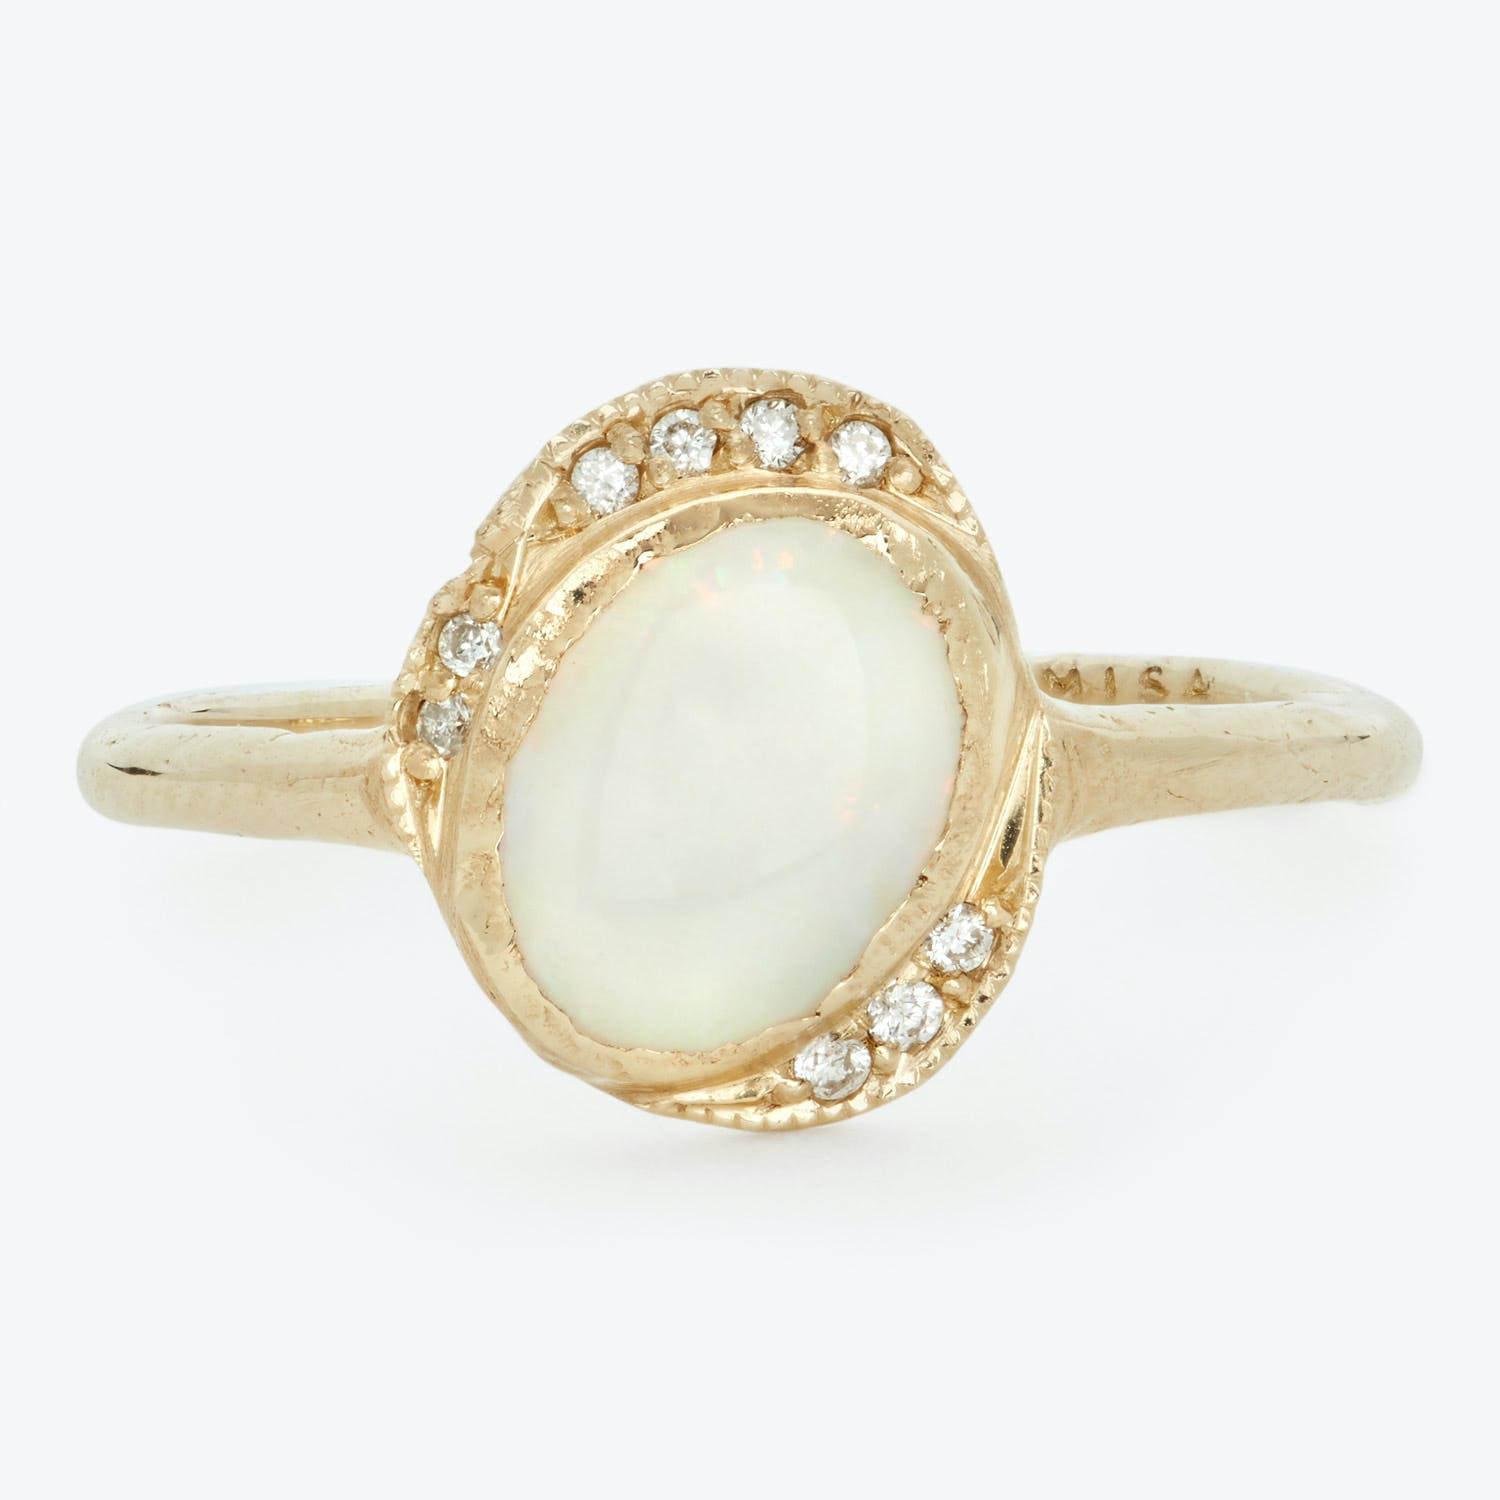 Misa Jewelry Opal Oasis Ring